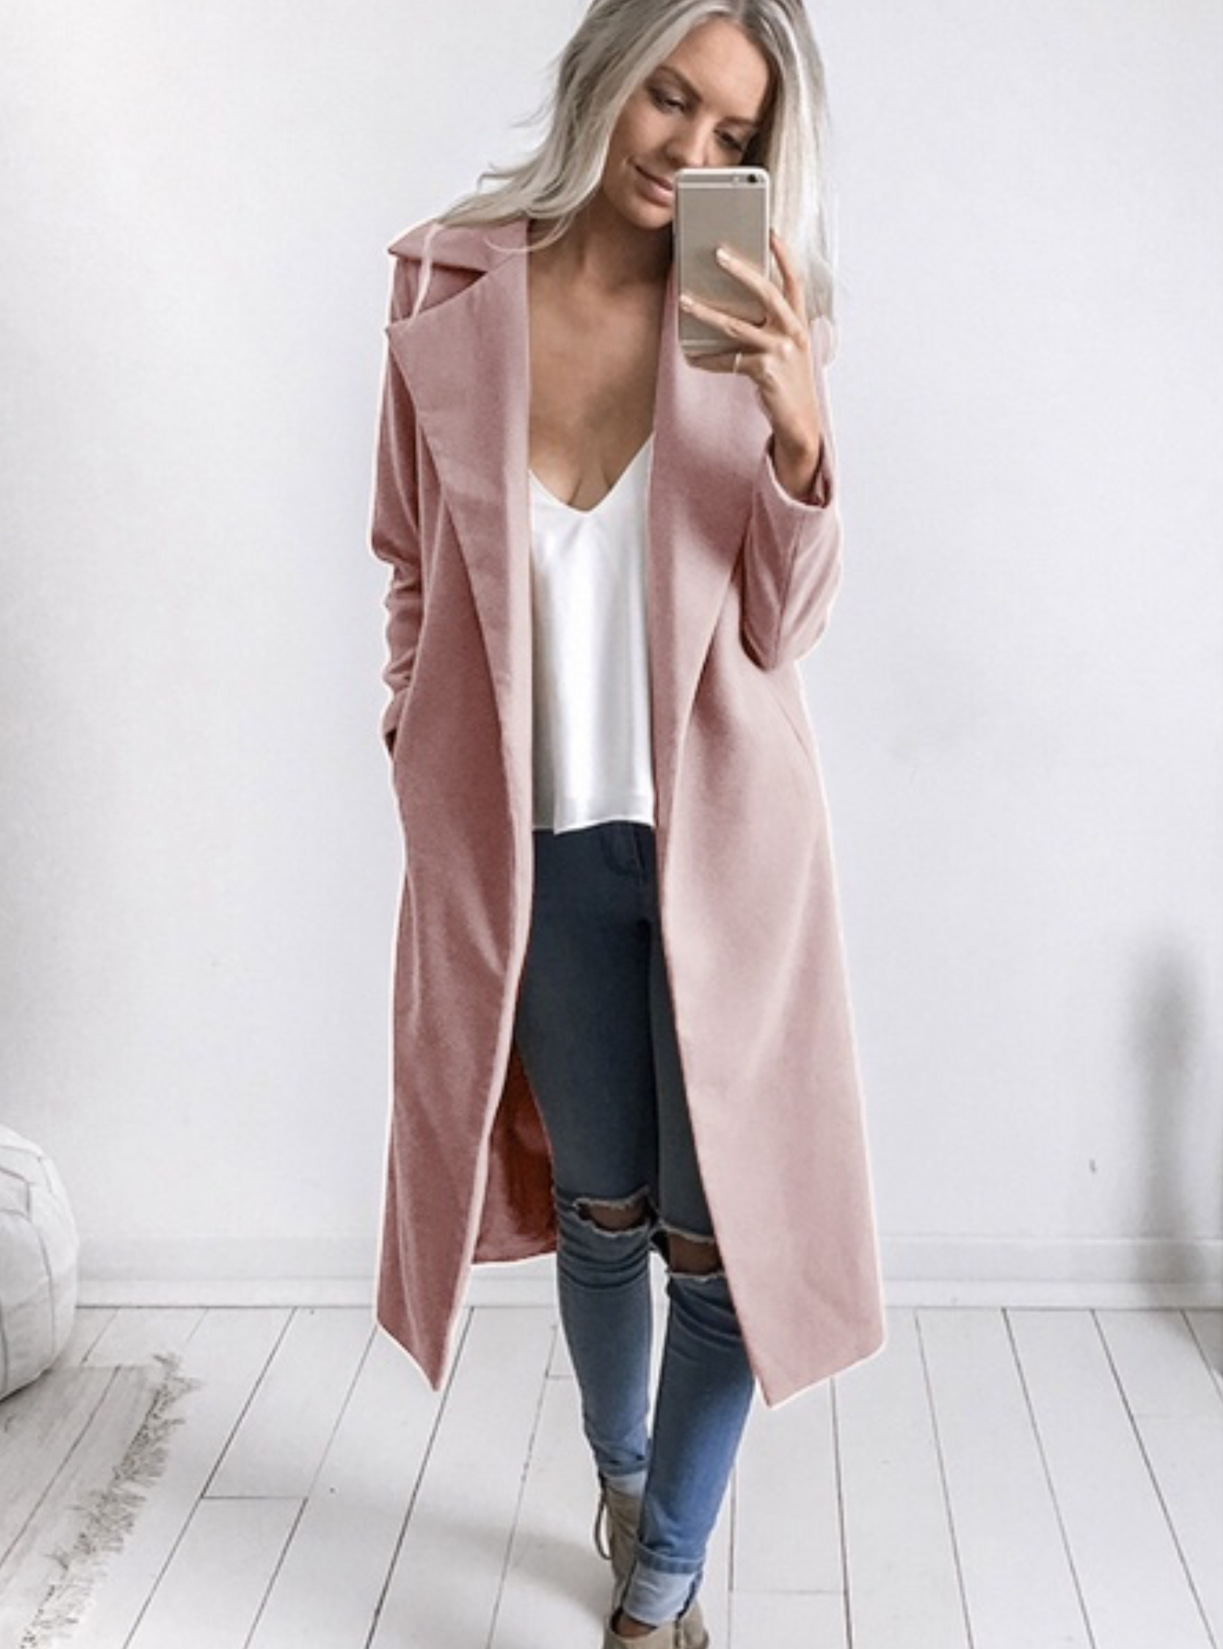 woman coats winter 2018 fall vintage plus size clothes winter women clothing long coat women fashion pink ladies jackets woolen